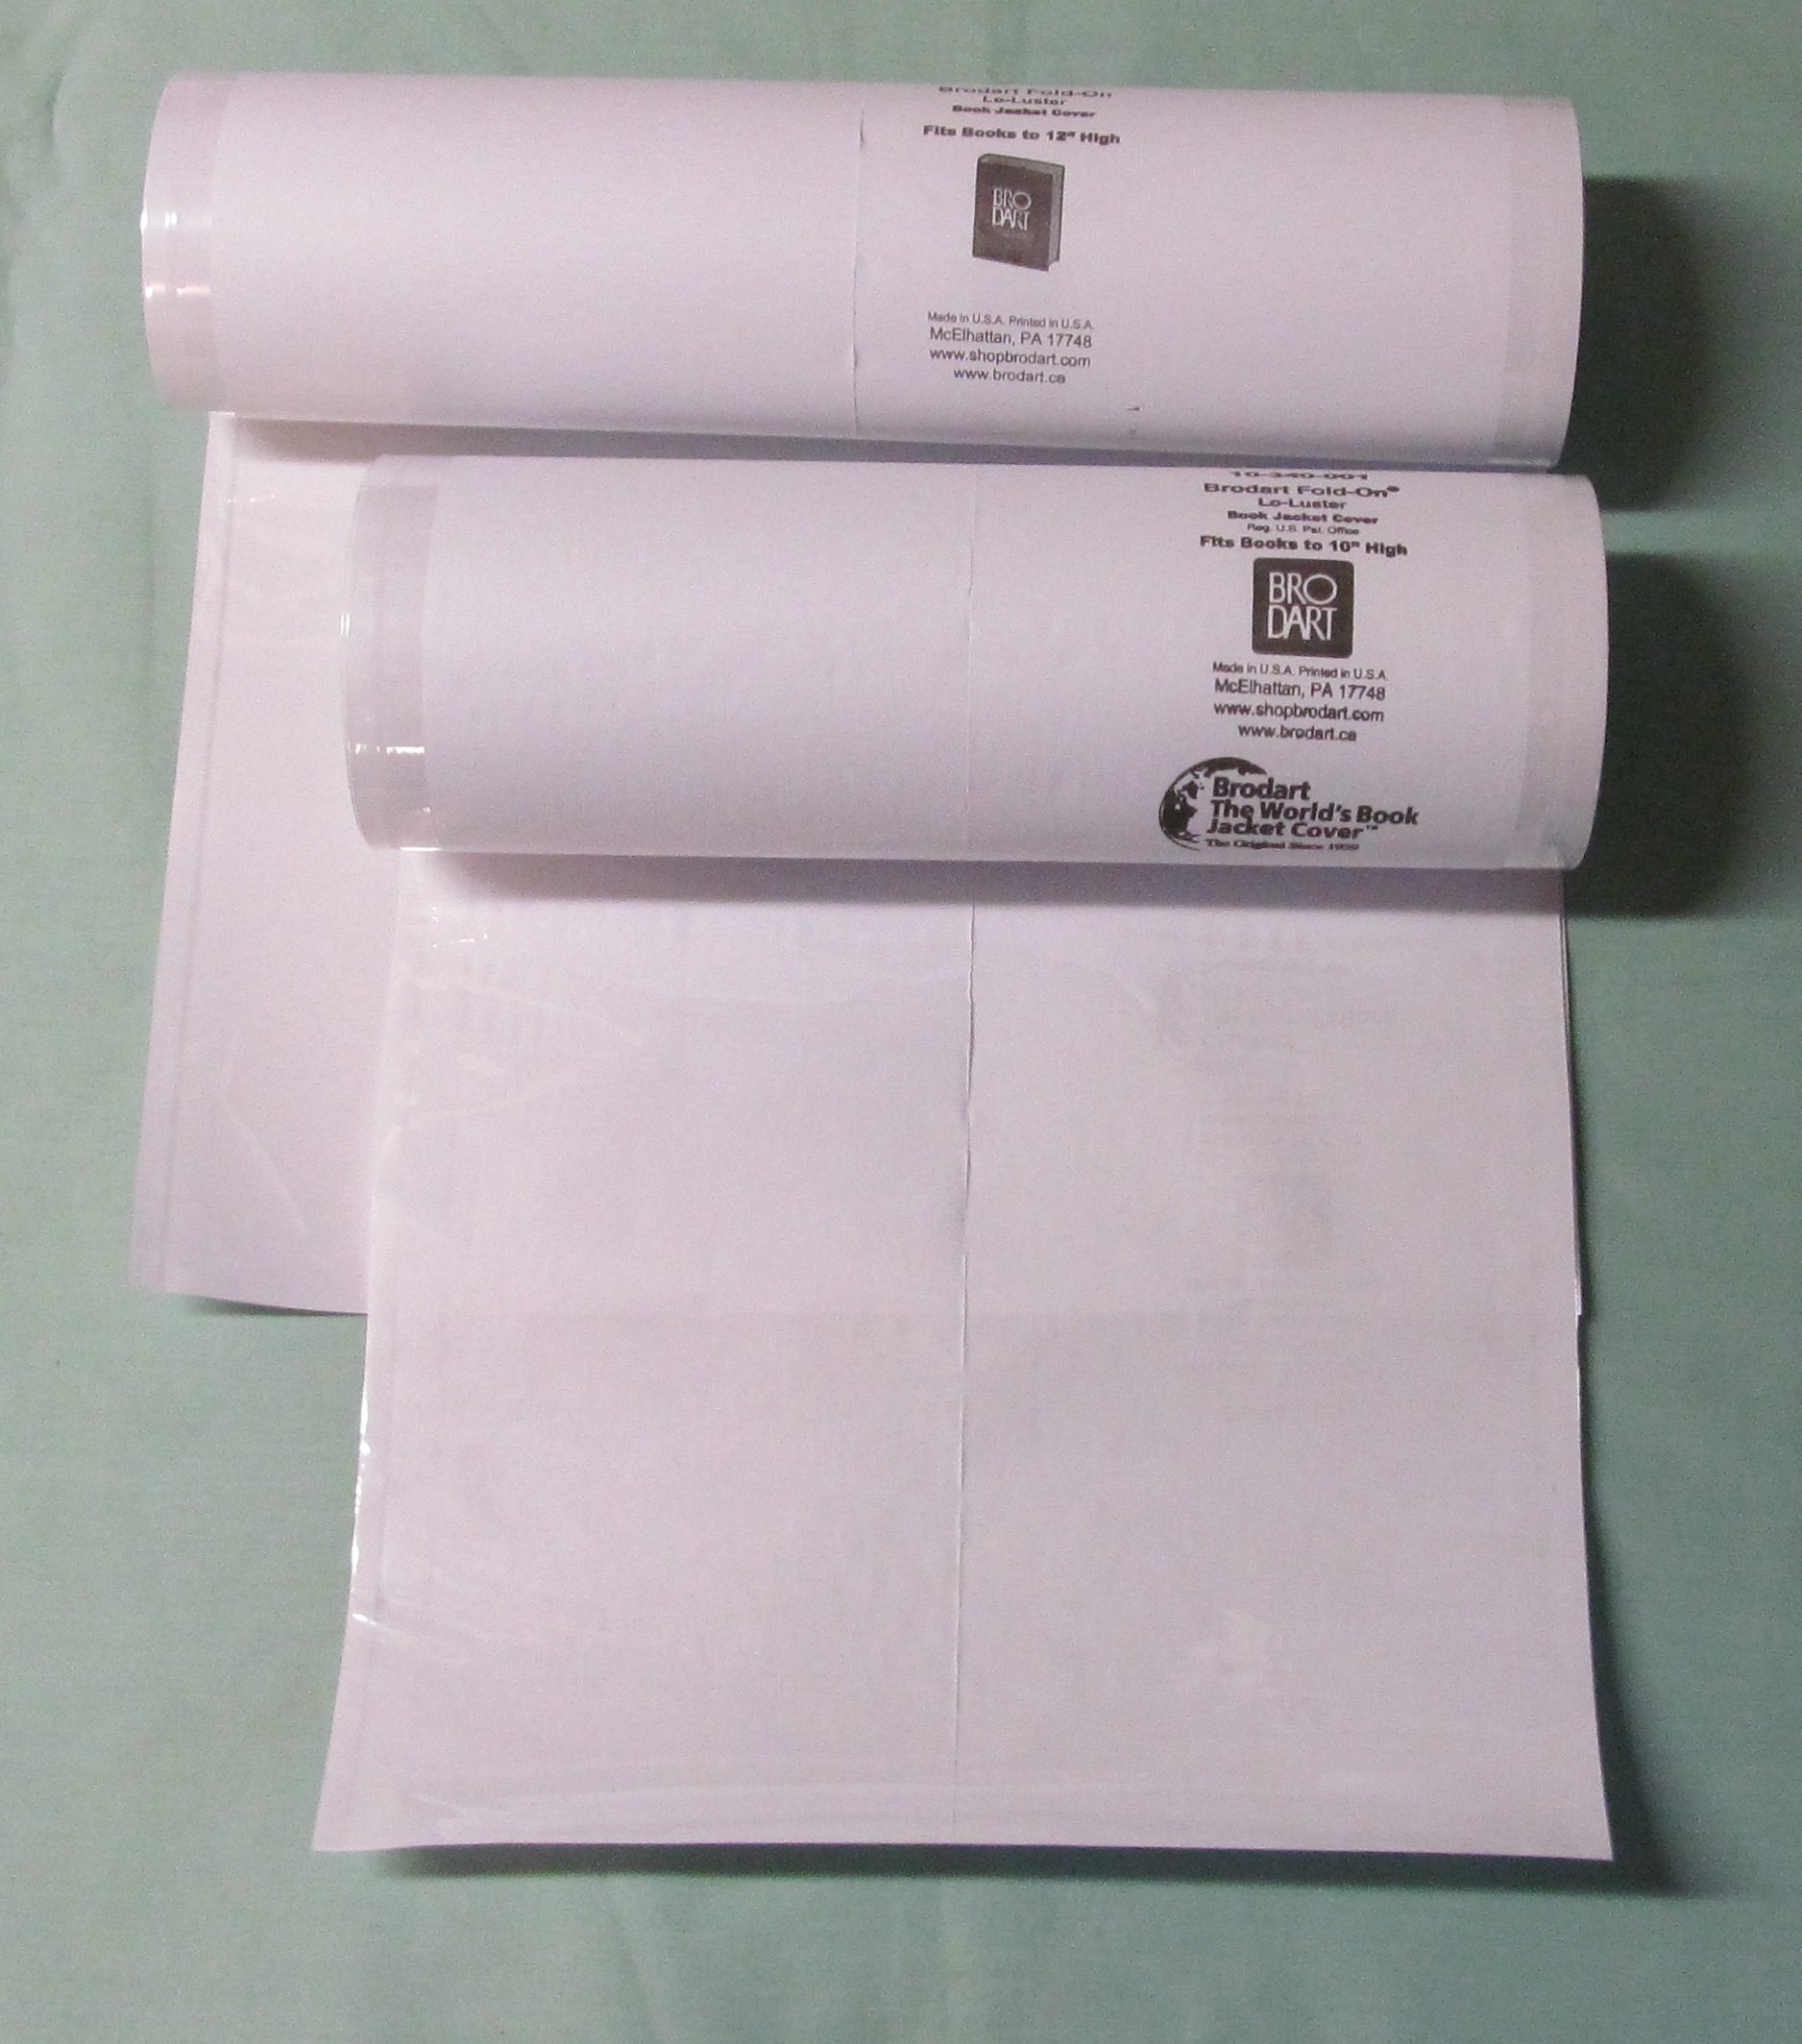 20 Yards Brodart Fold-On Book Jacket Covers COMBO PACK - TWO 10 YARD ROLLS (10 & 12 inch) -- Center-Loading, Clear Mylar, Adjustable